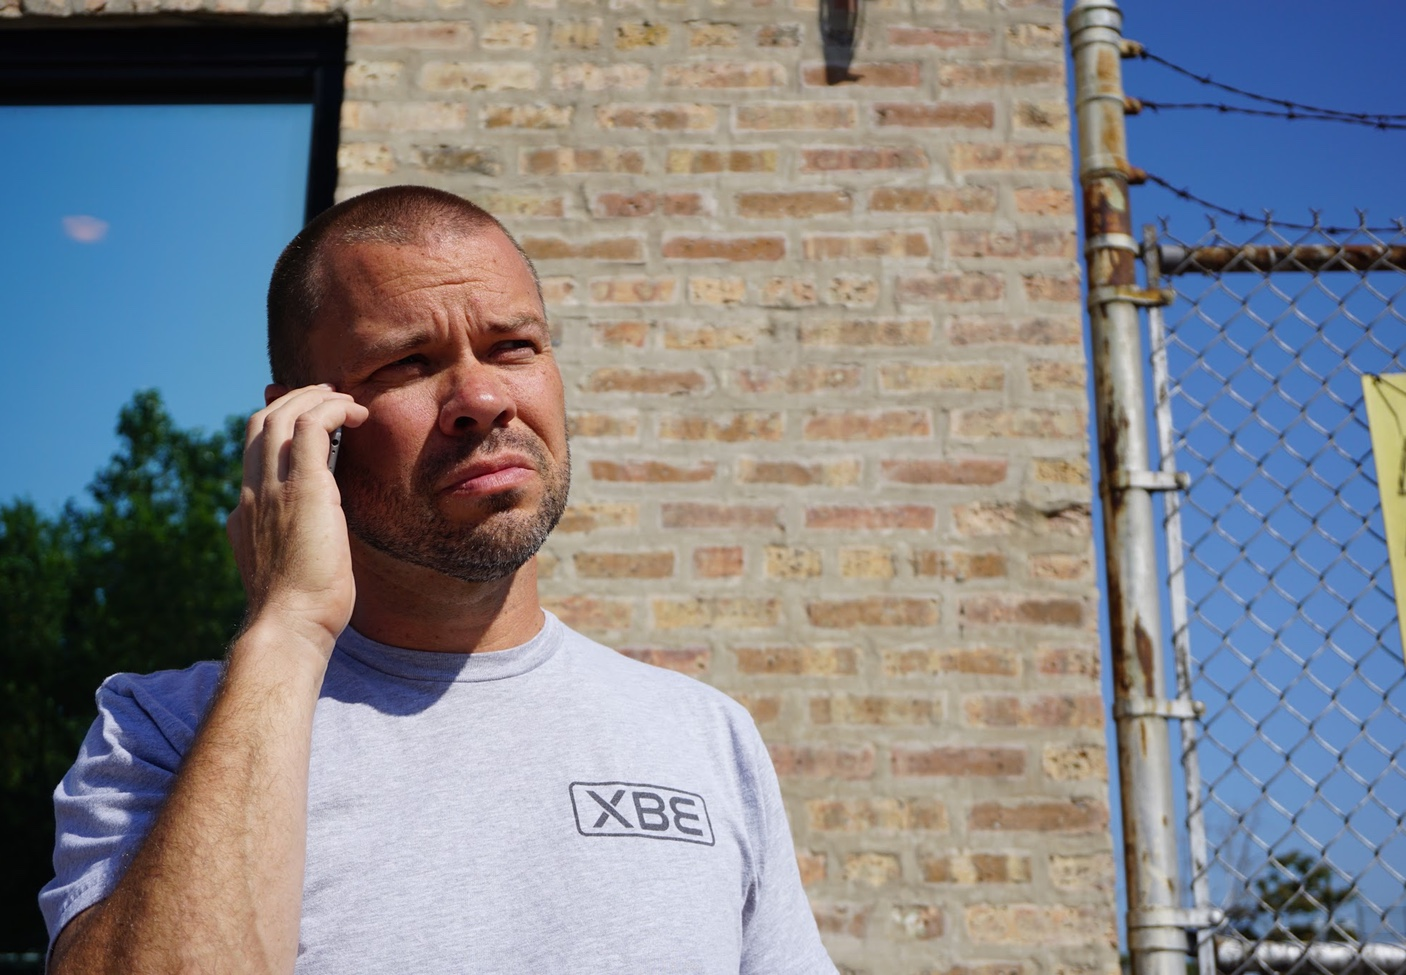 XBE's CEO Sean Devine on the phone looking a bit grumpy